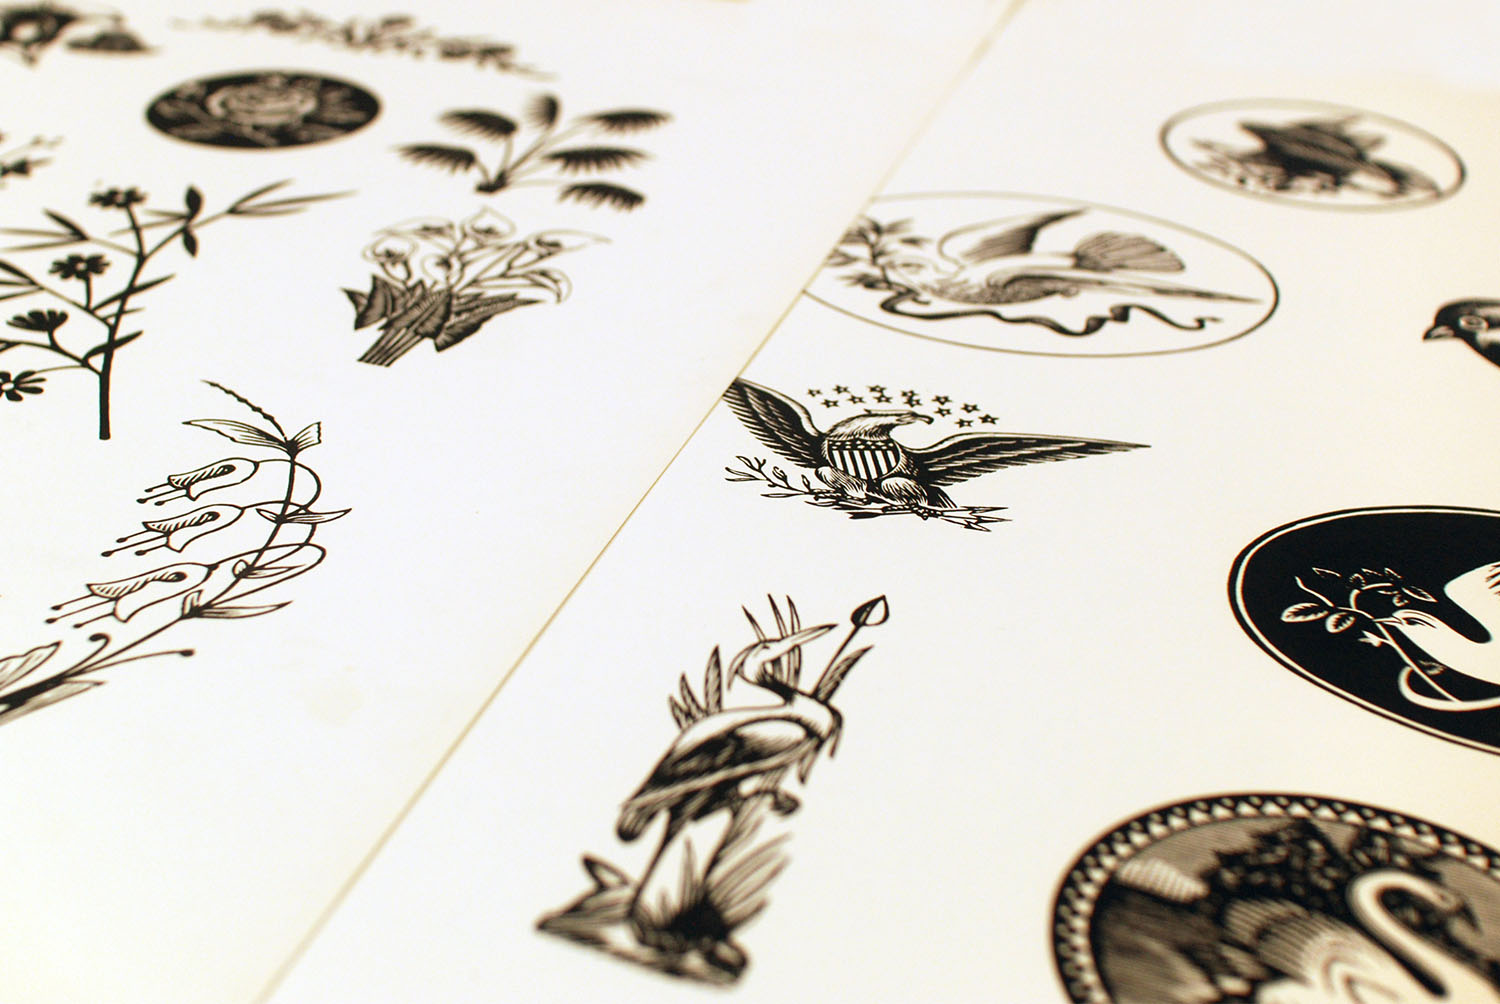 Letterpress images of flowers and birds